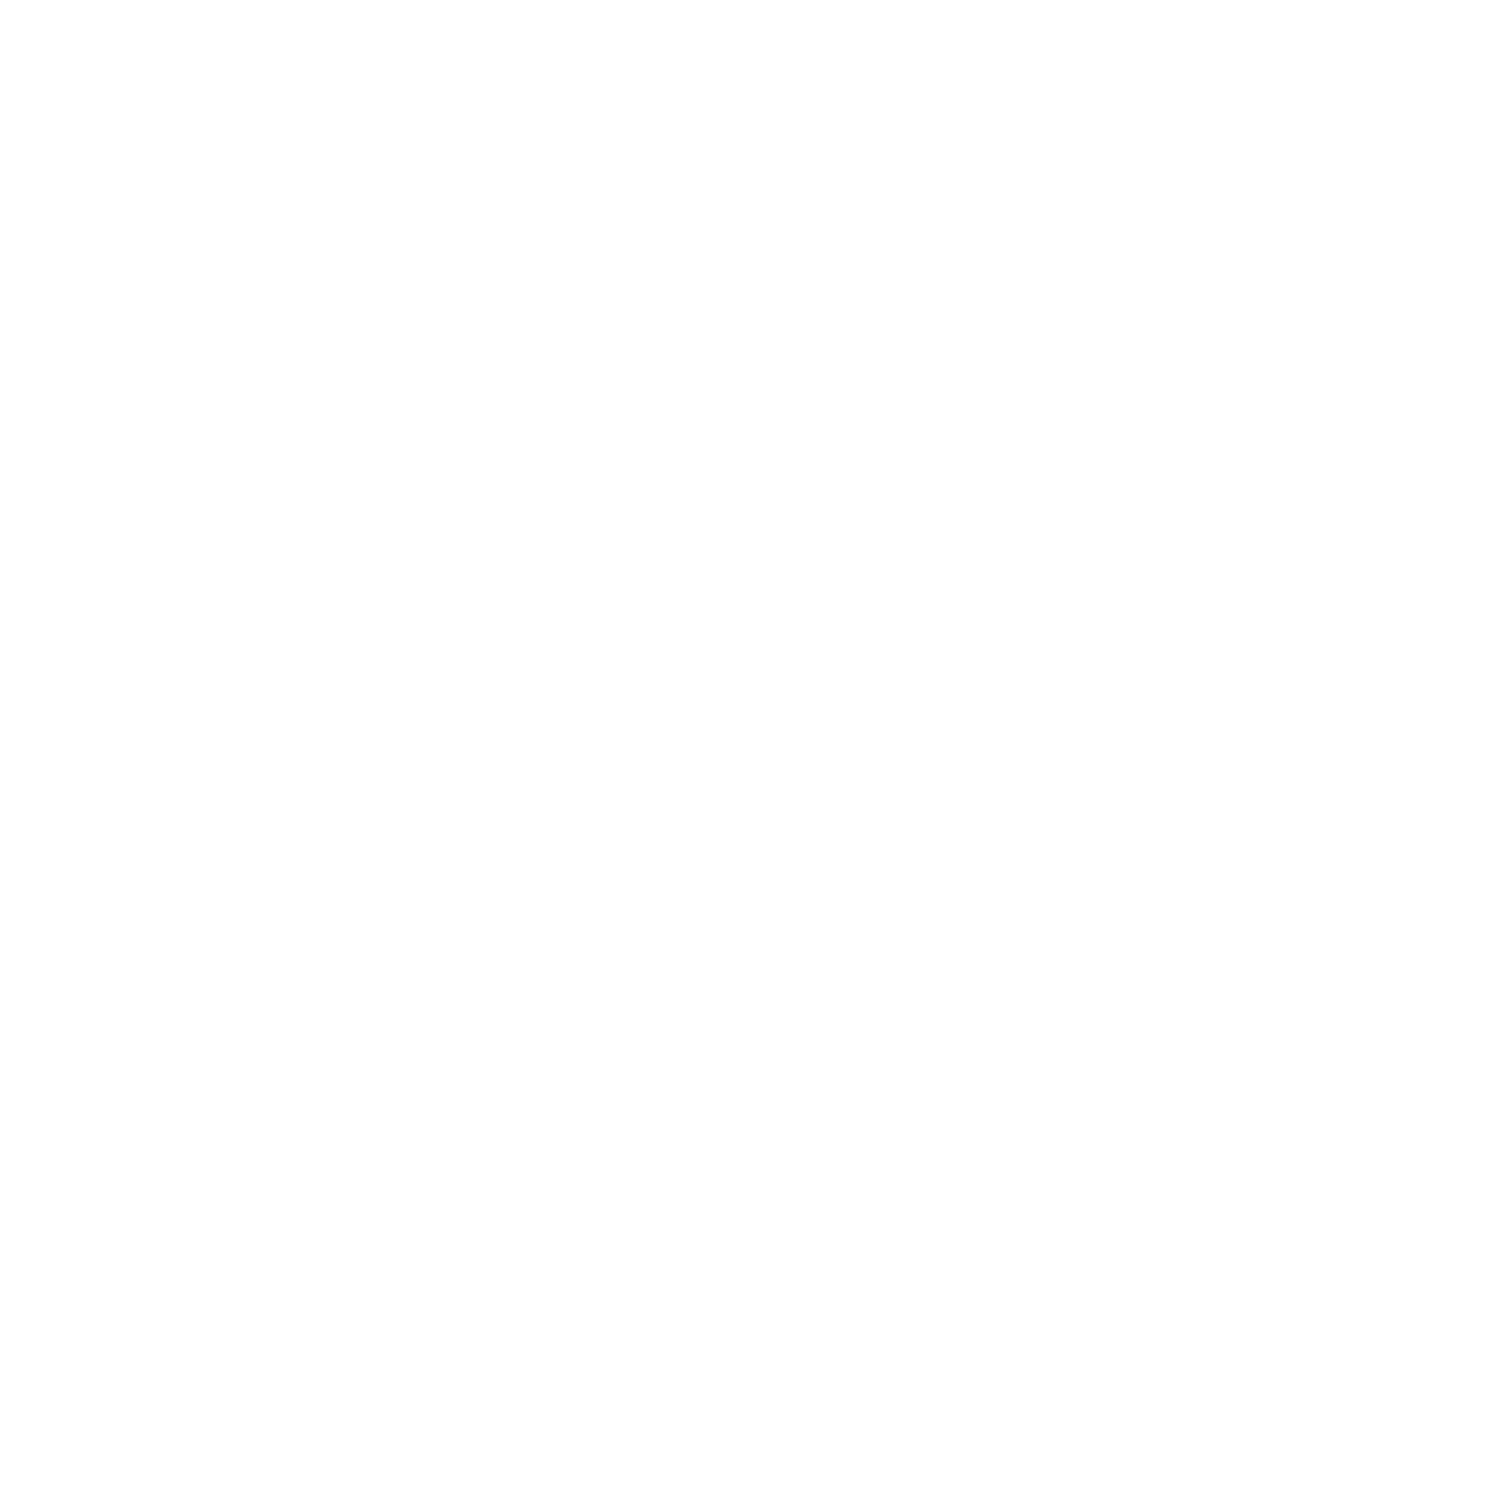 Strong Cabinetry